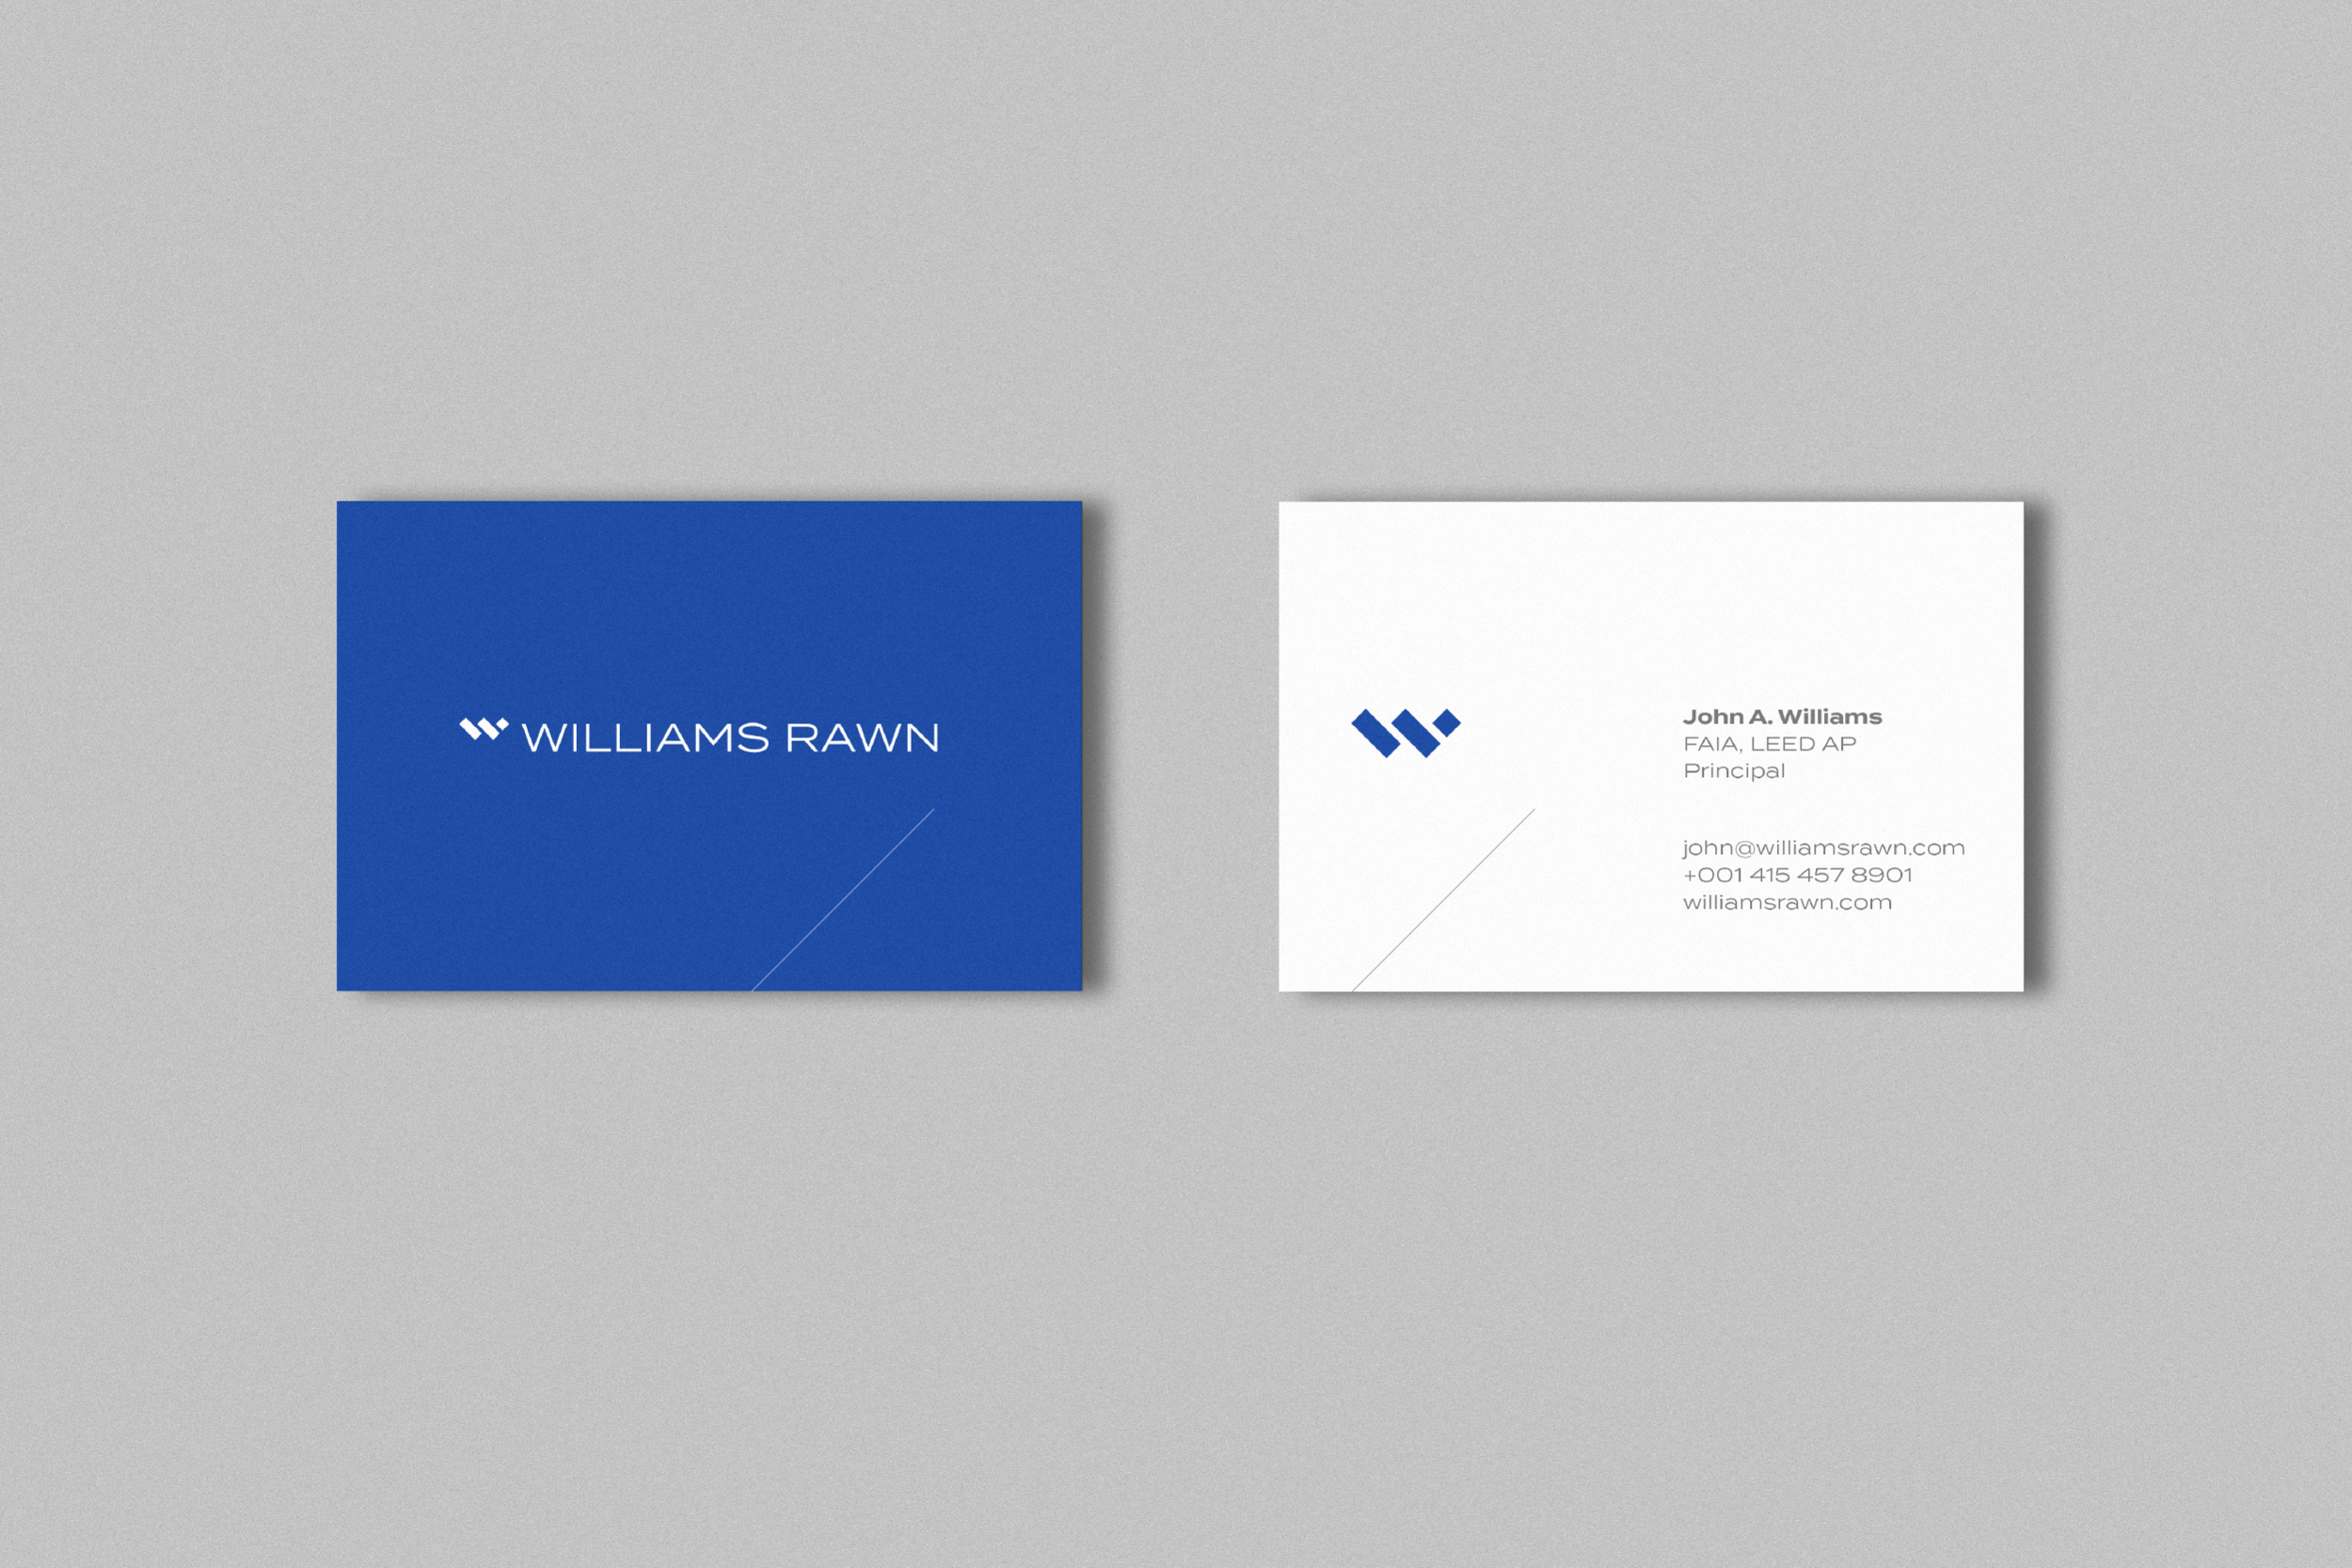 Williams Rawn Brand Delivery 2_Artboard 13.png